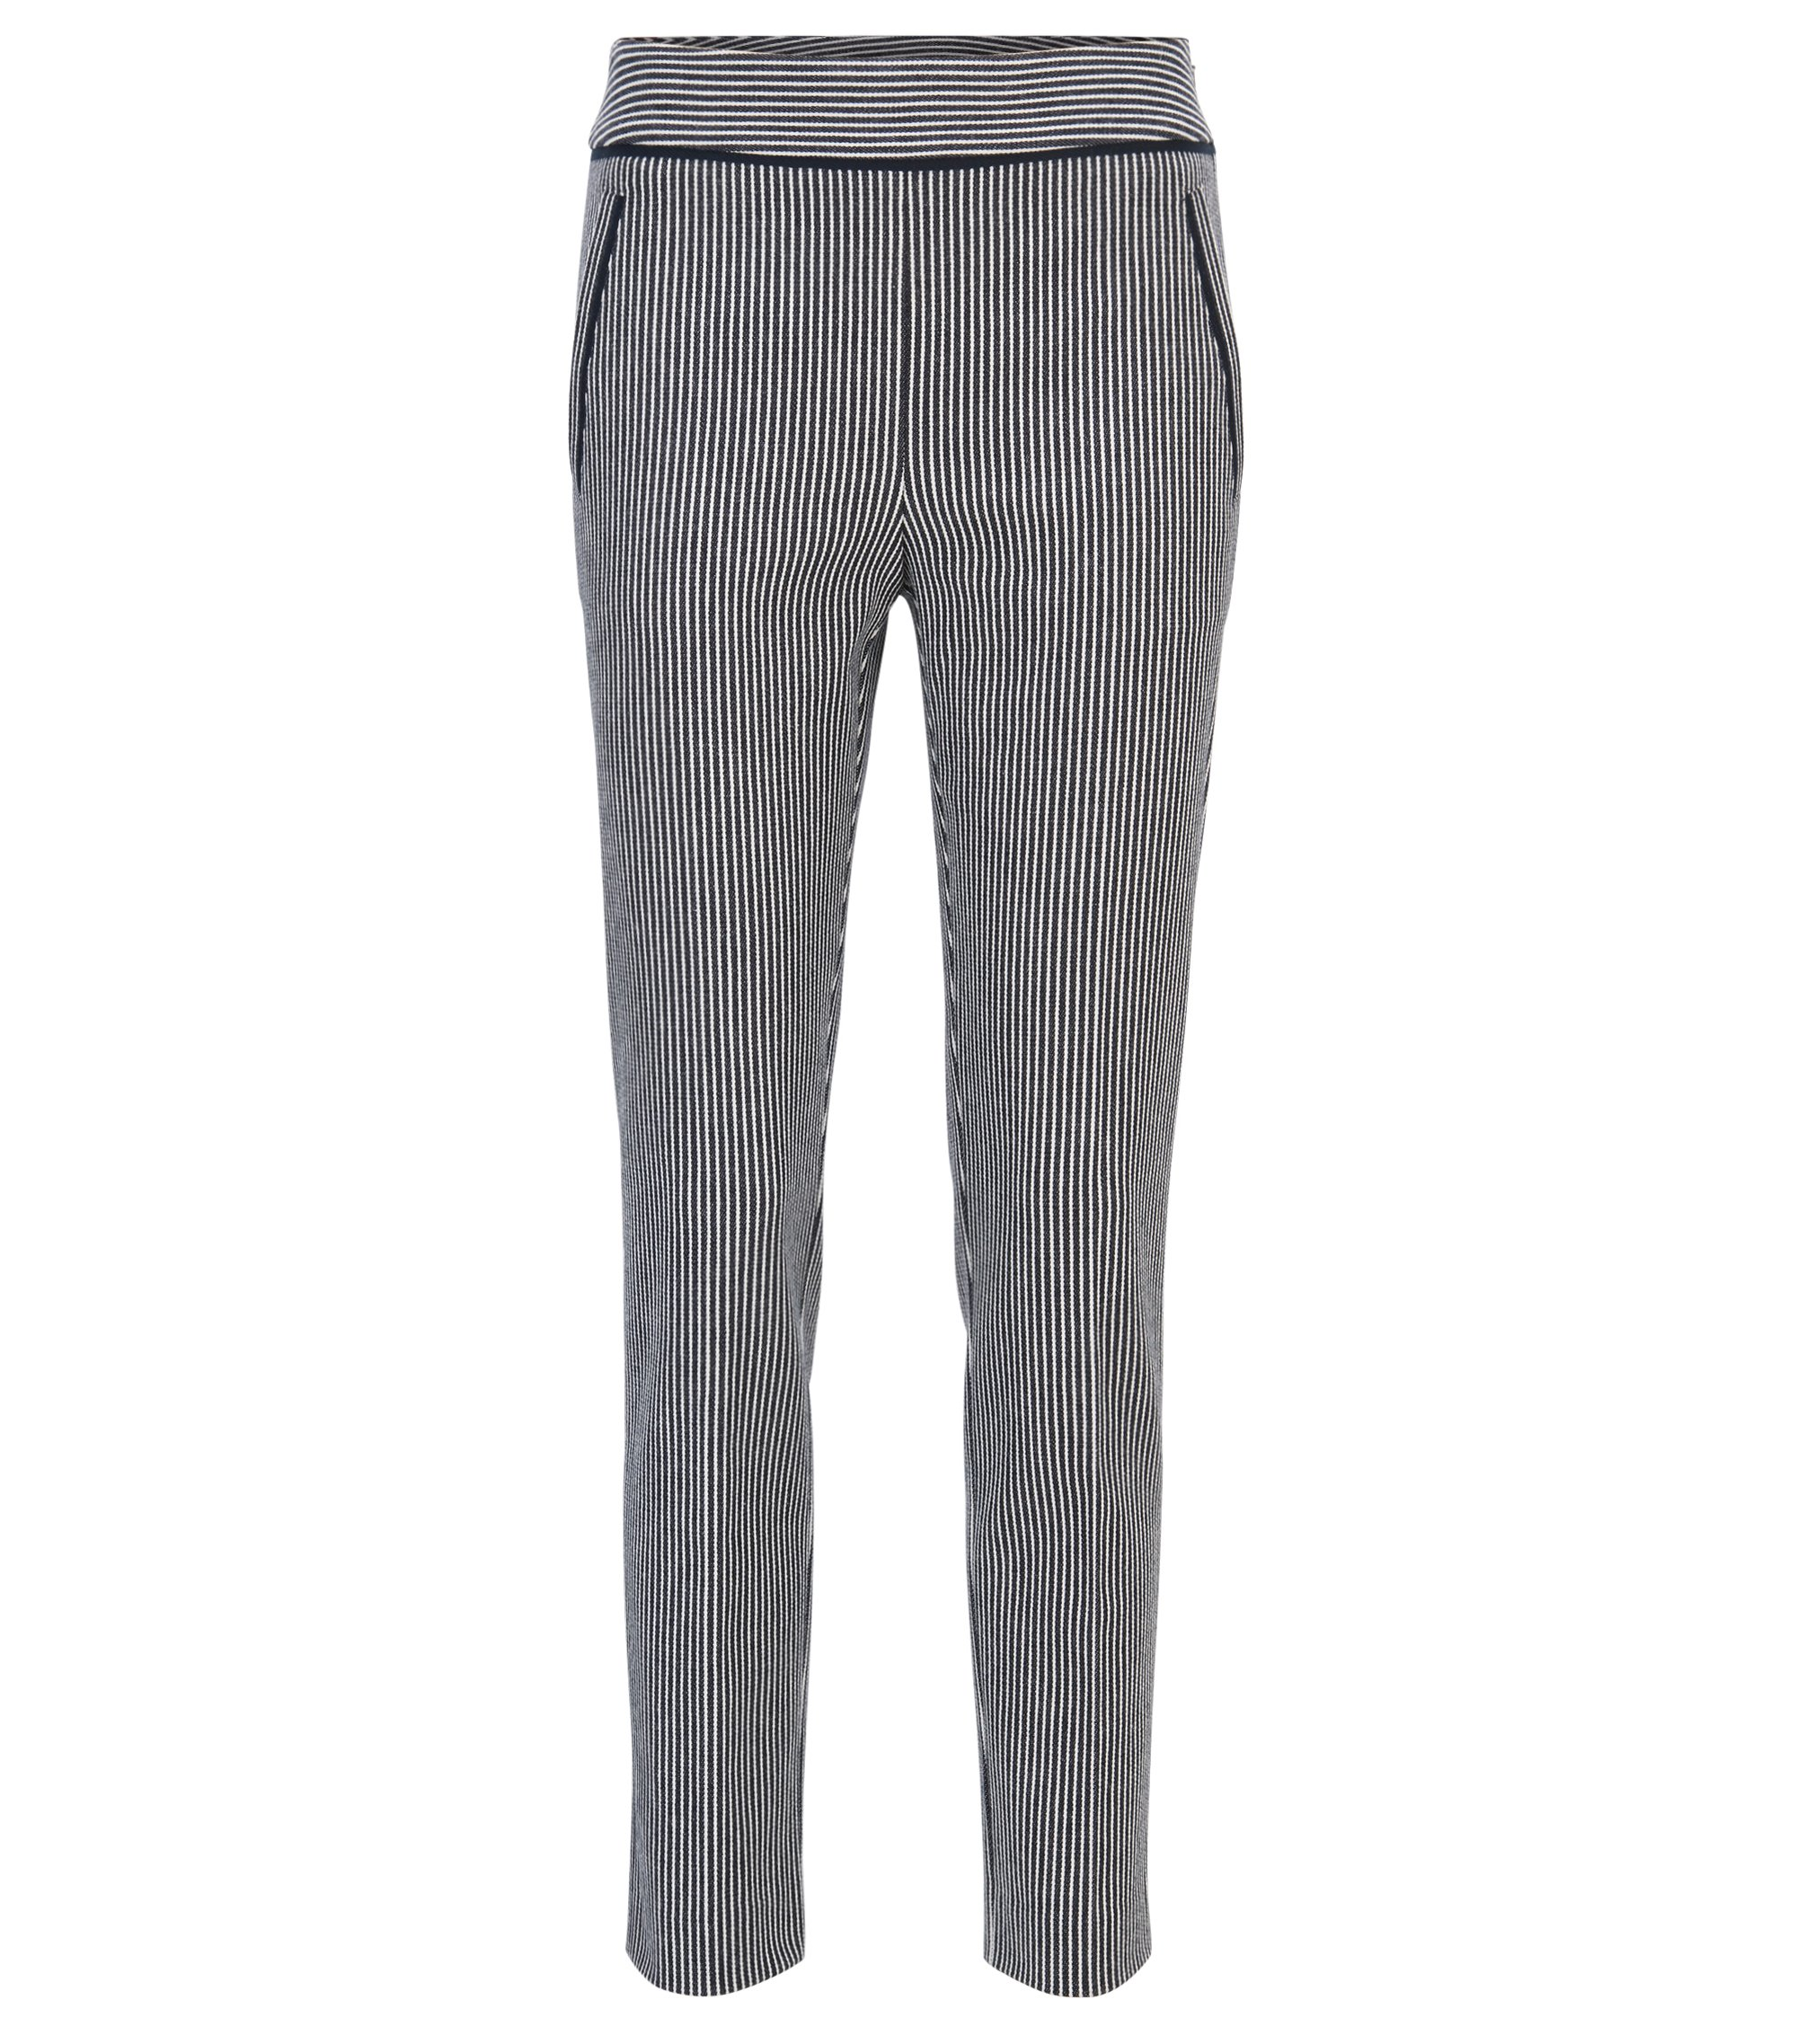 Pantalon raccourci Regular Fit en denim de coton stretch à rayures, Fantaisie